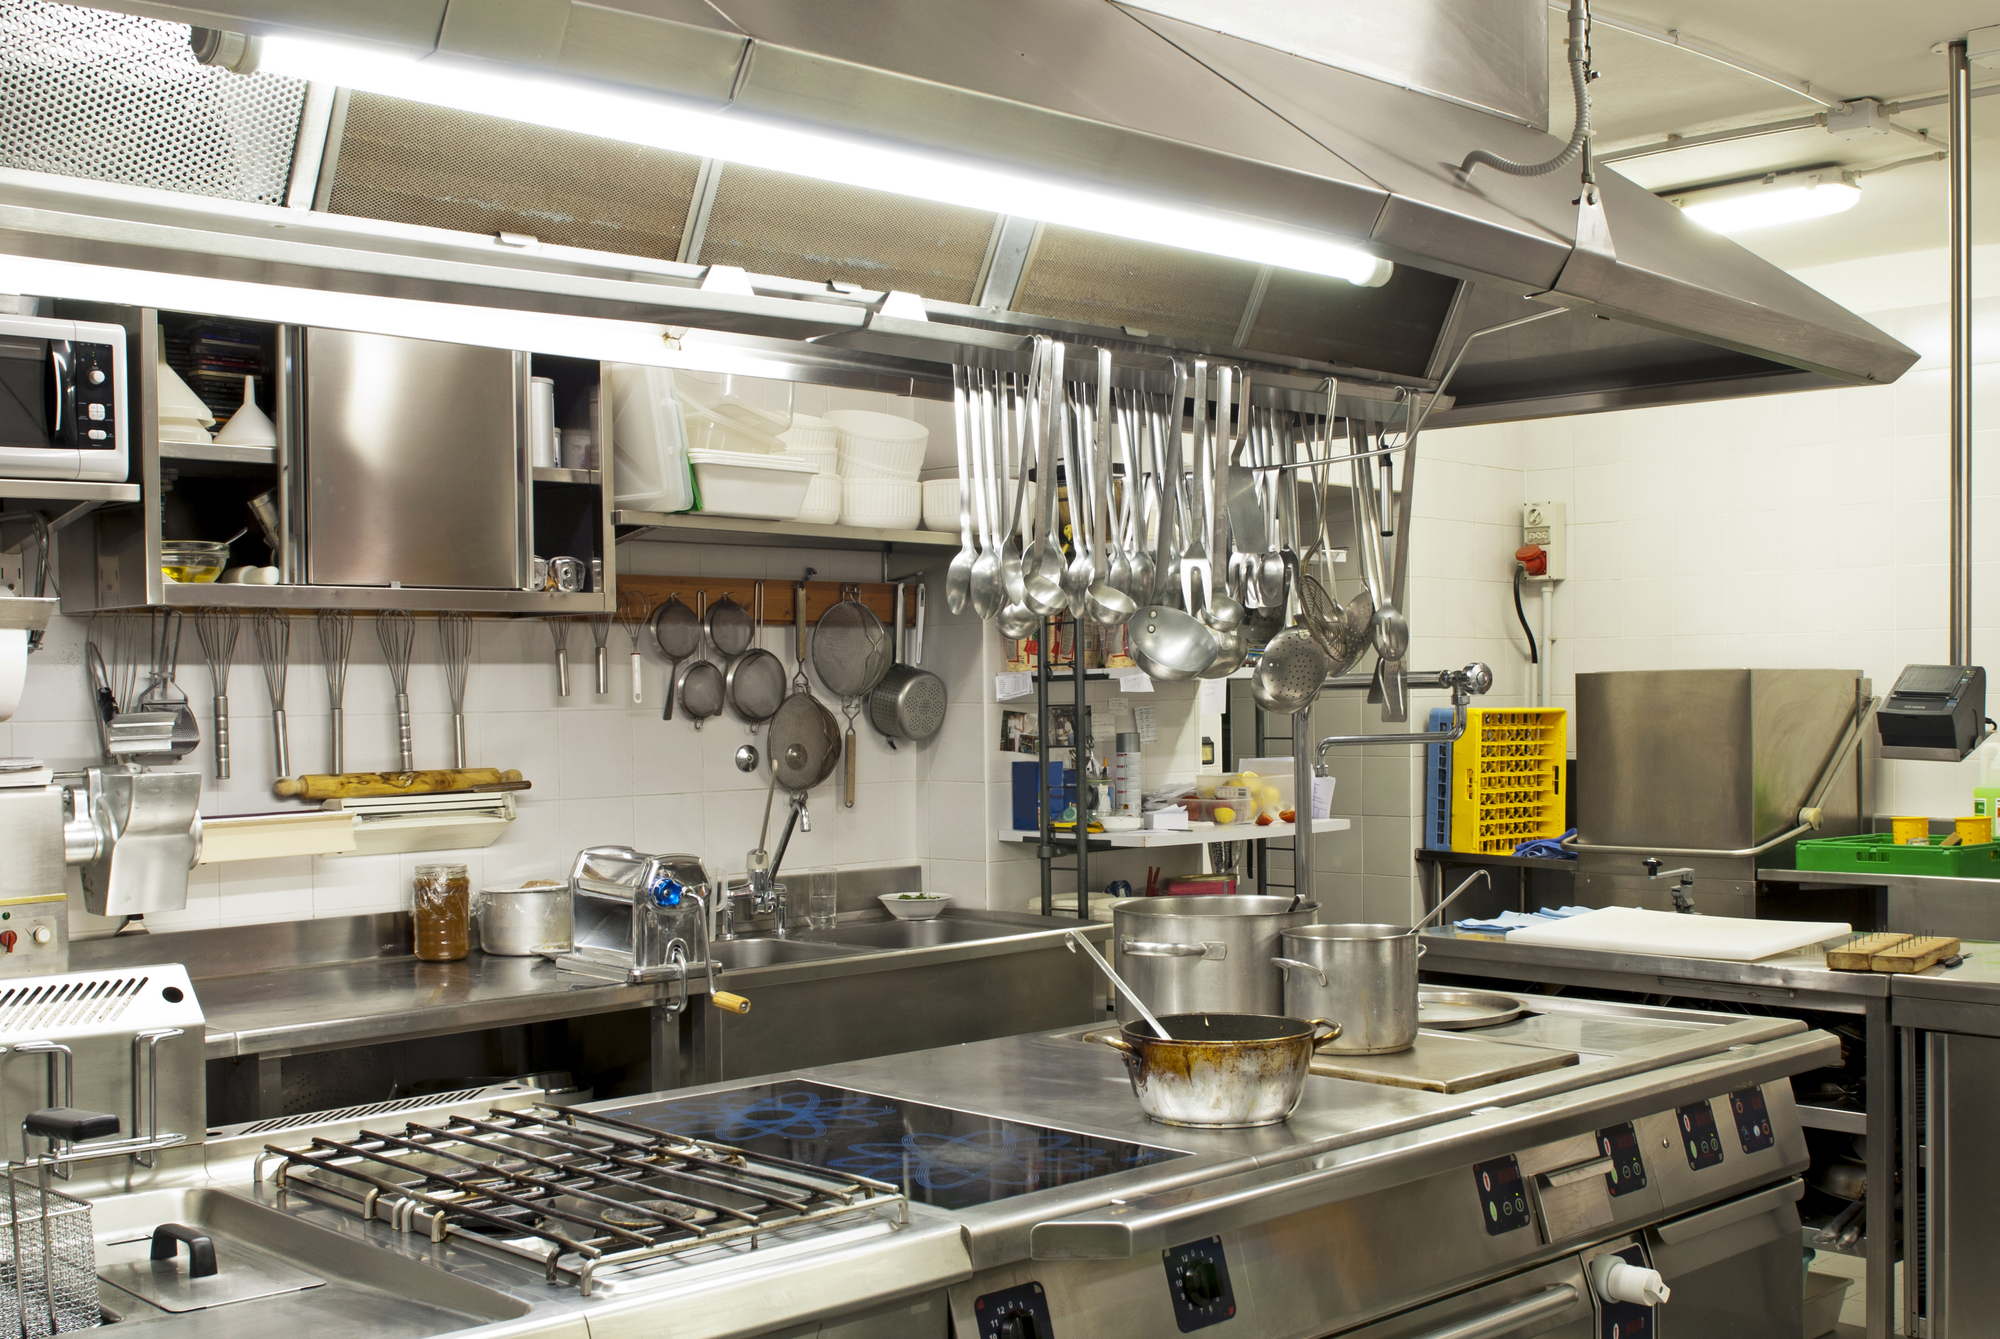 New to Running a Kitchen Here Is Your Restaurant Equipment Checklist  Tech24  Feasterville